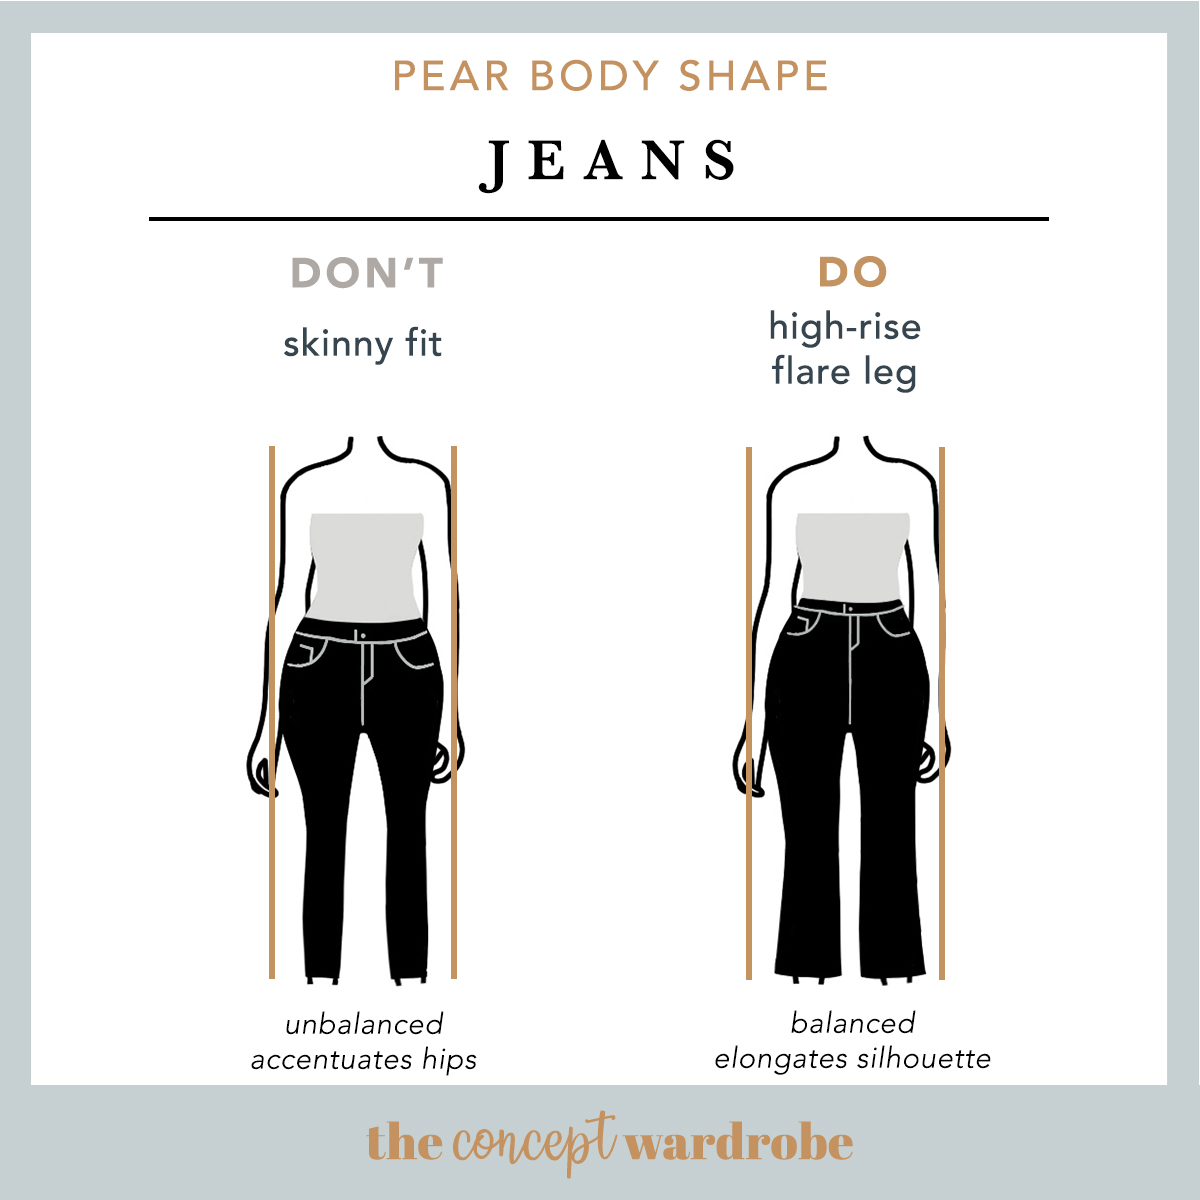 How To Dress The Pear Body Shape